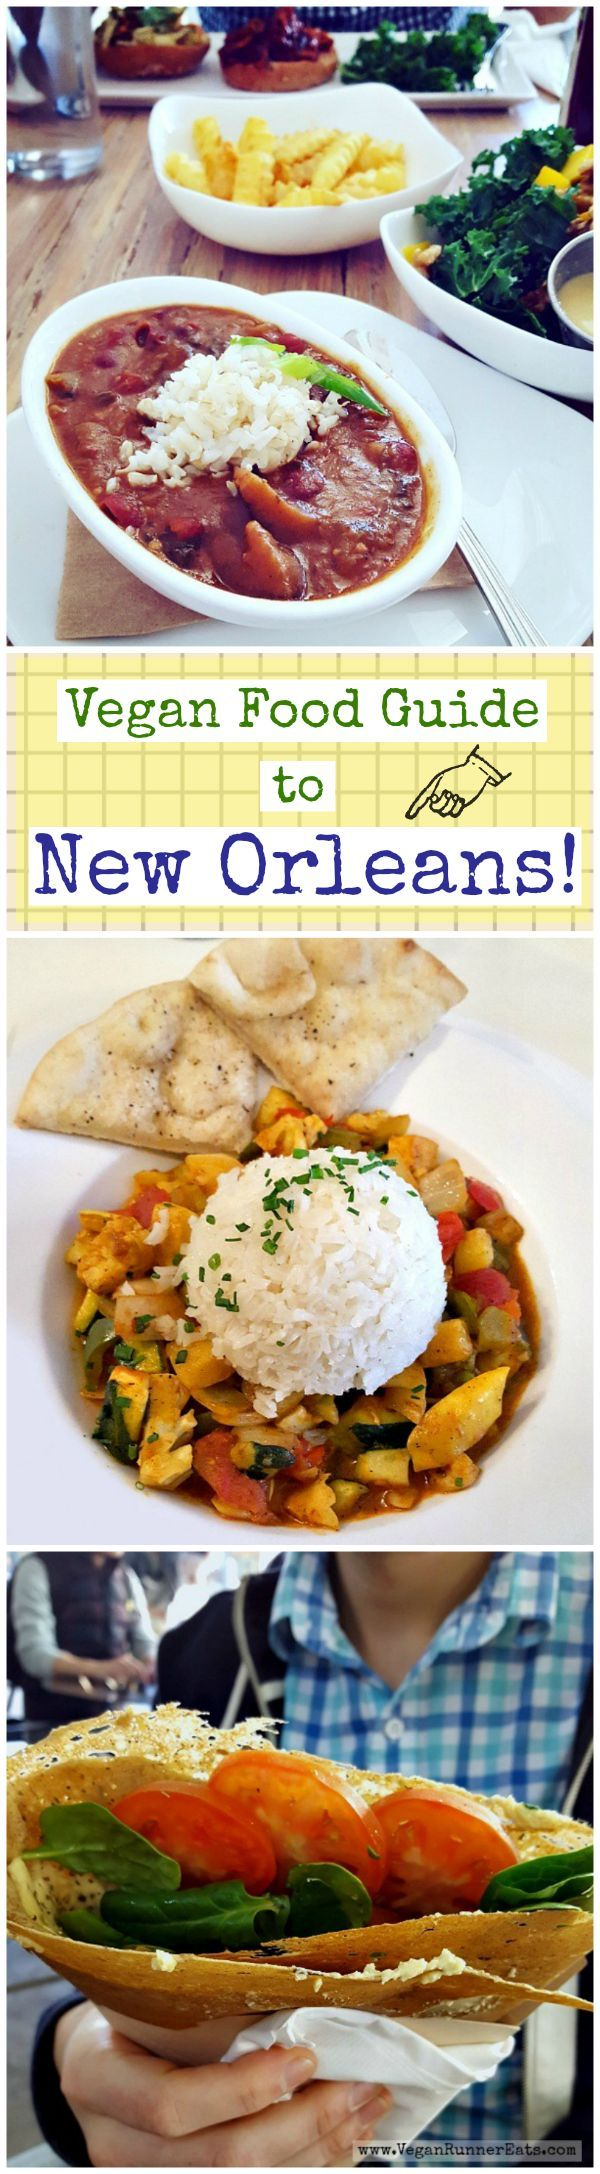 Vegan Food And Restaurant Guide To New Orleans Food Guide Vegan Restaurants Vegan Cajun Recipes